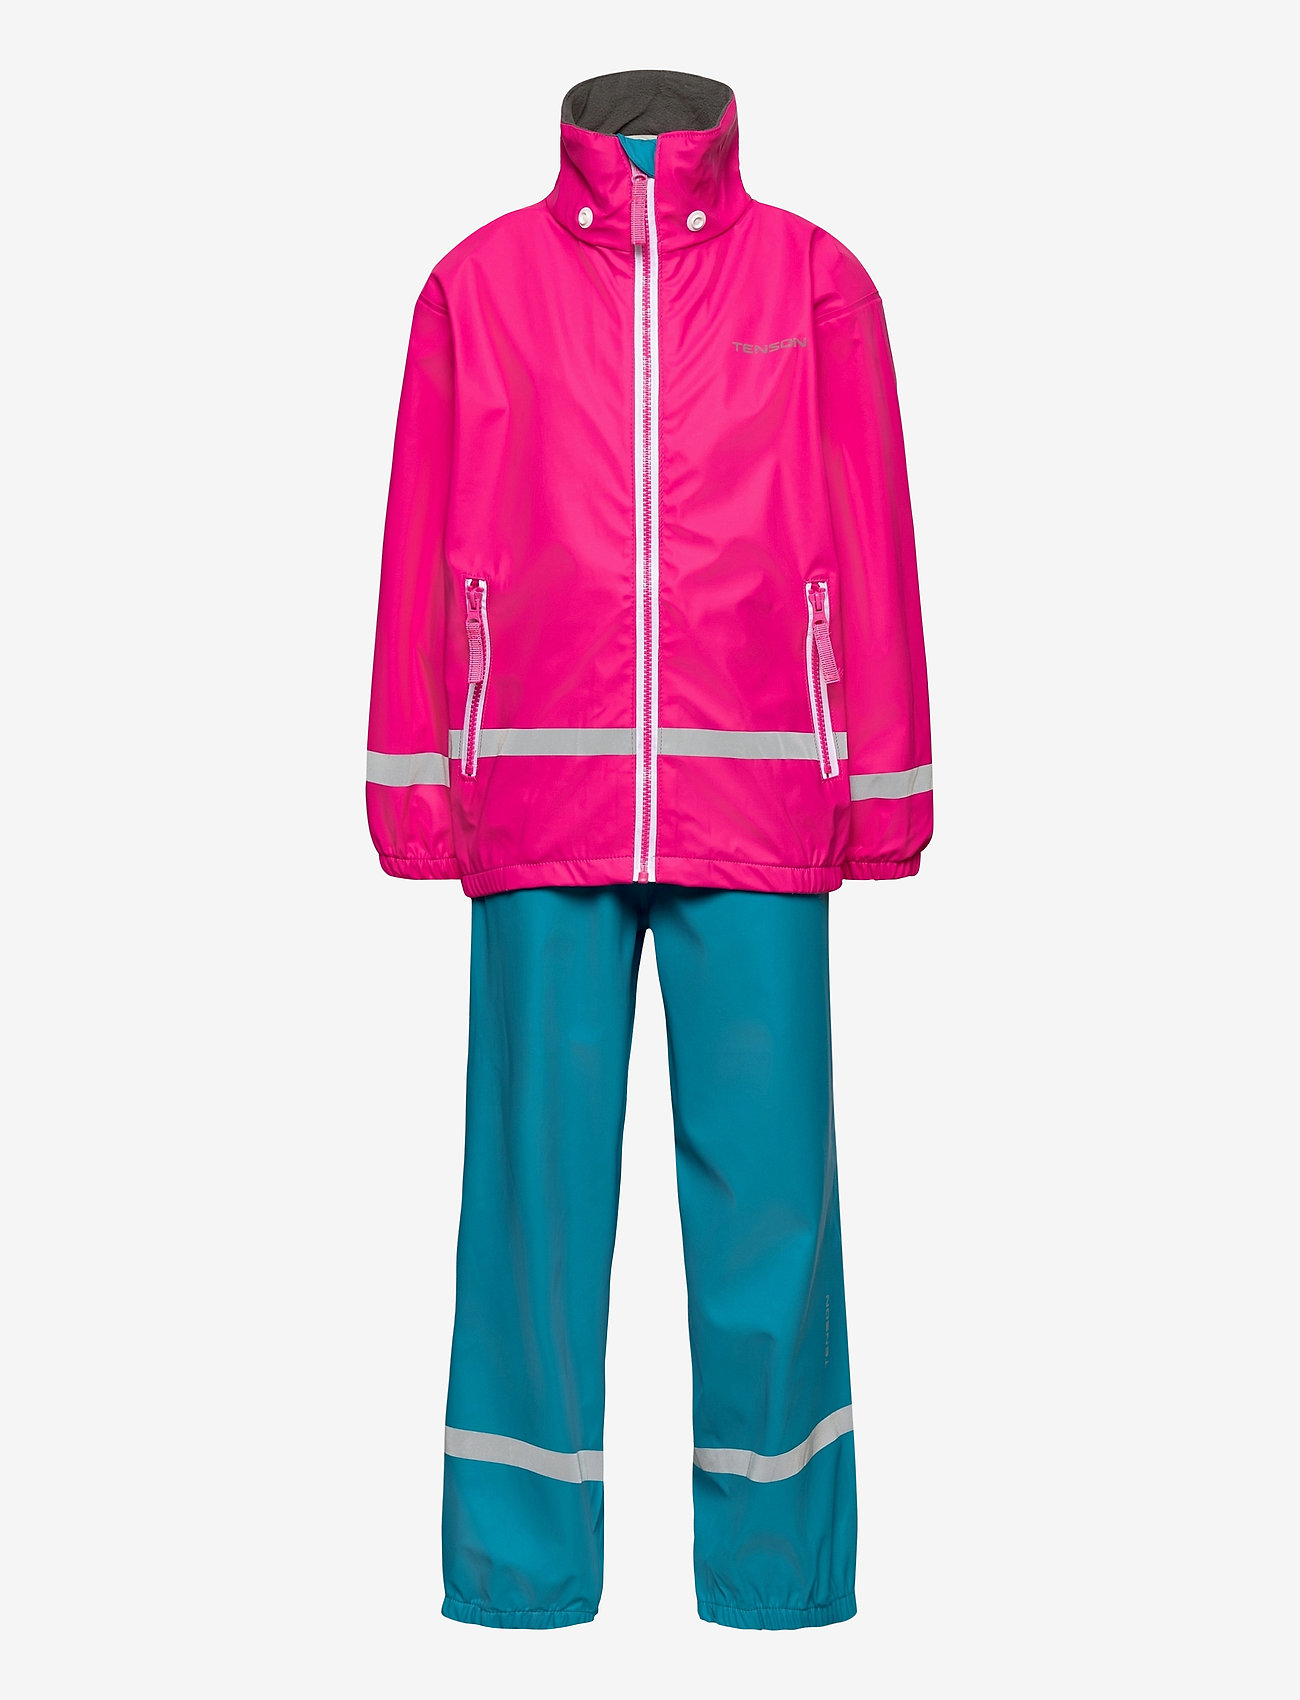 Tenson - Saturn Overall junior - sets & suits - pink - 1